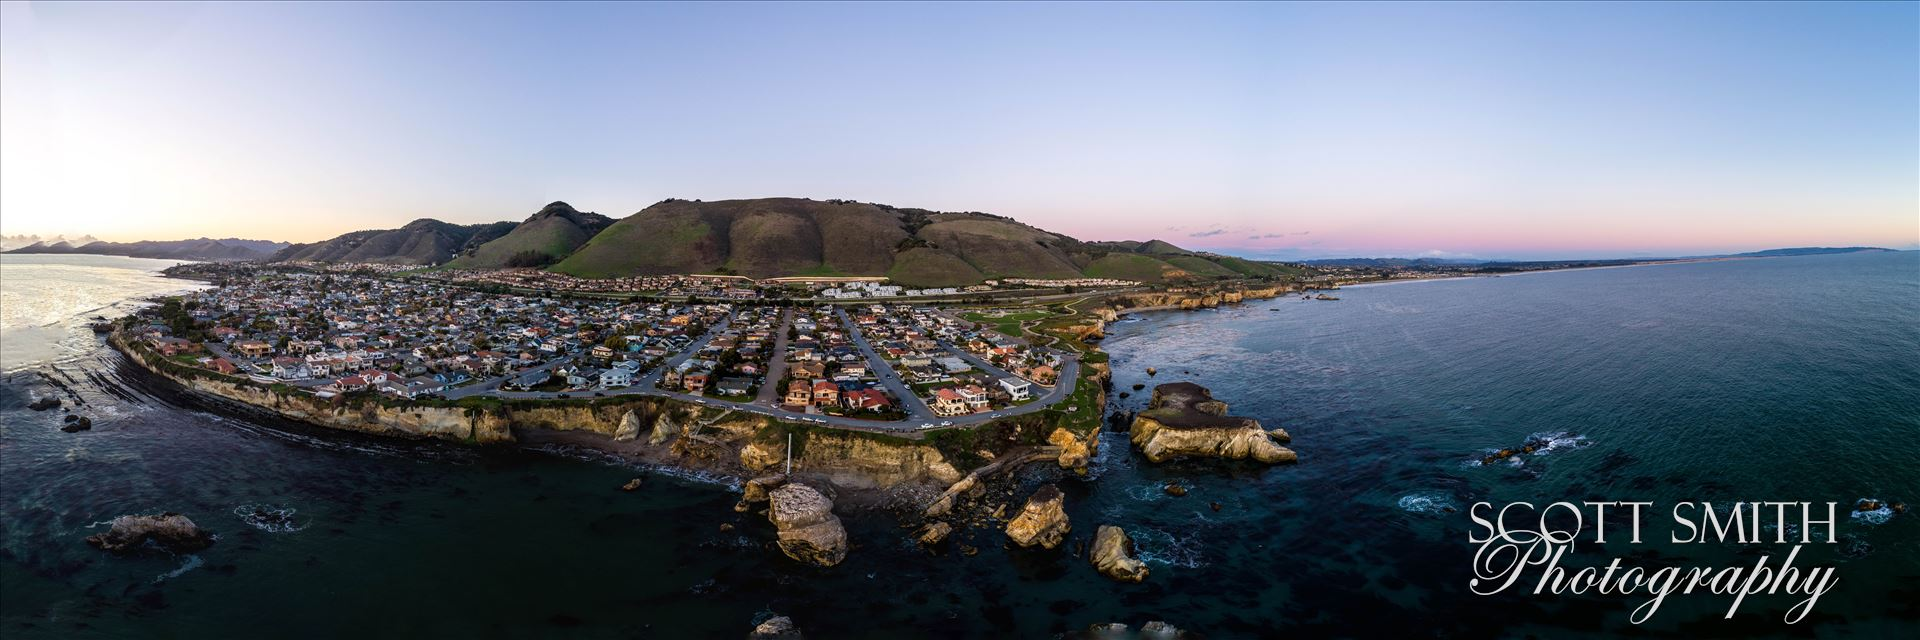 Aerial of Shell Beach, California - Near sunset, at Shell Beach, California.  Composite of 21 high res images from a Phantom 4 Pro.  This is a super high resolution image at over 16k by 4k pixels. by D Scott Smith